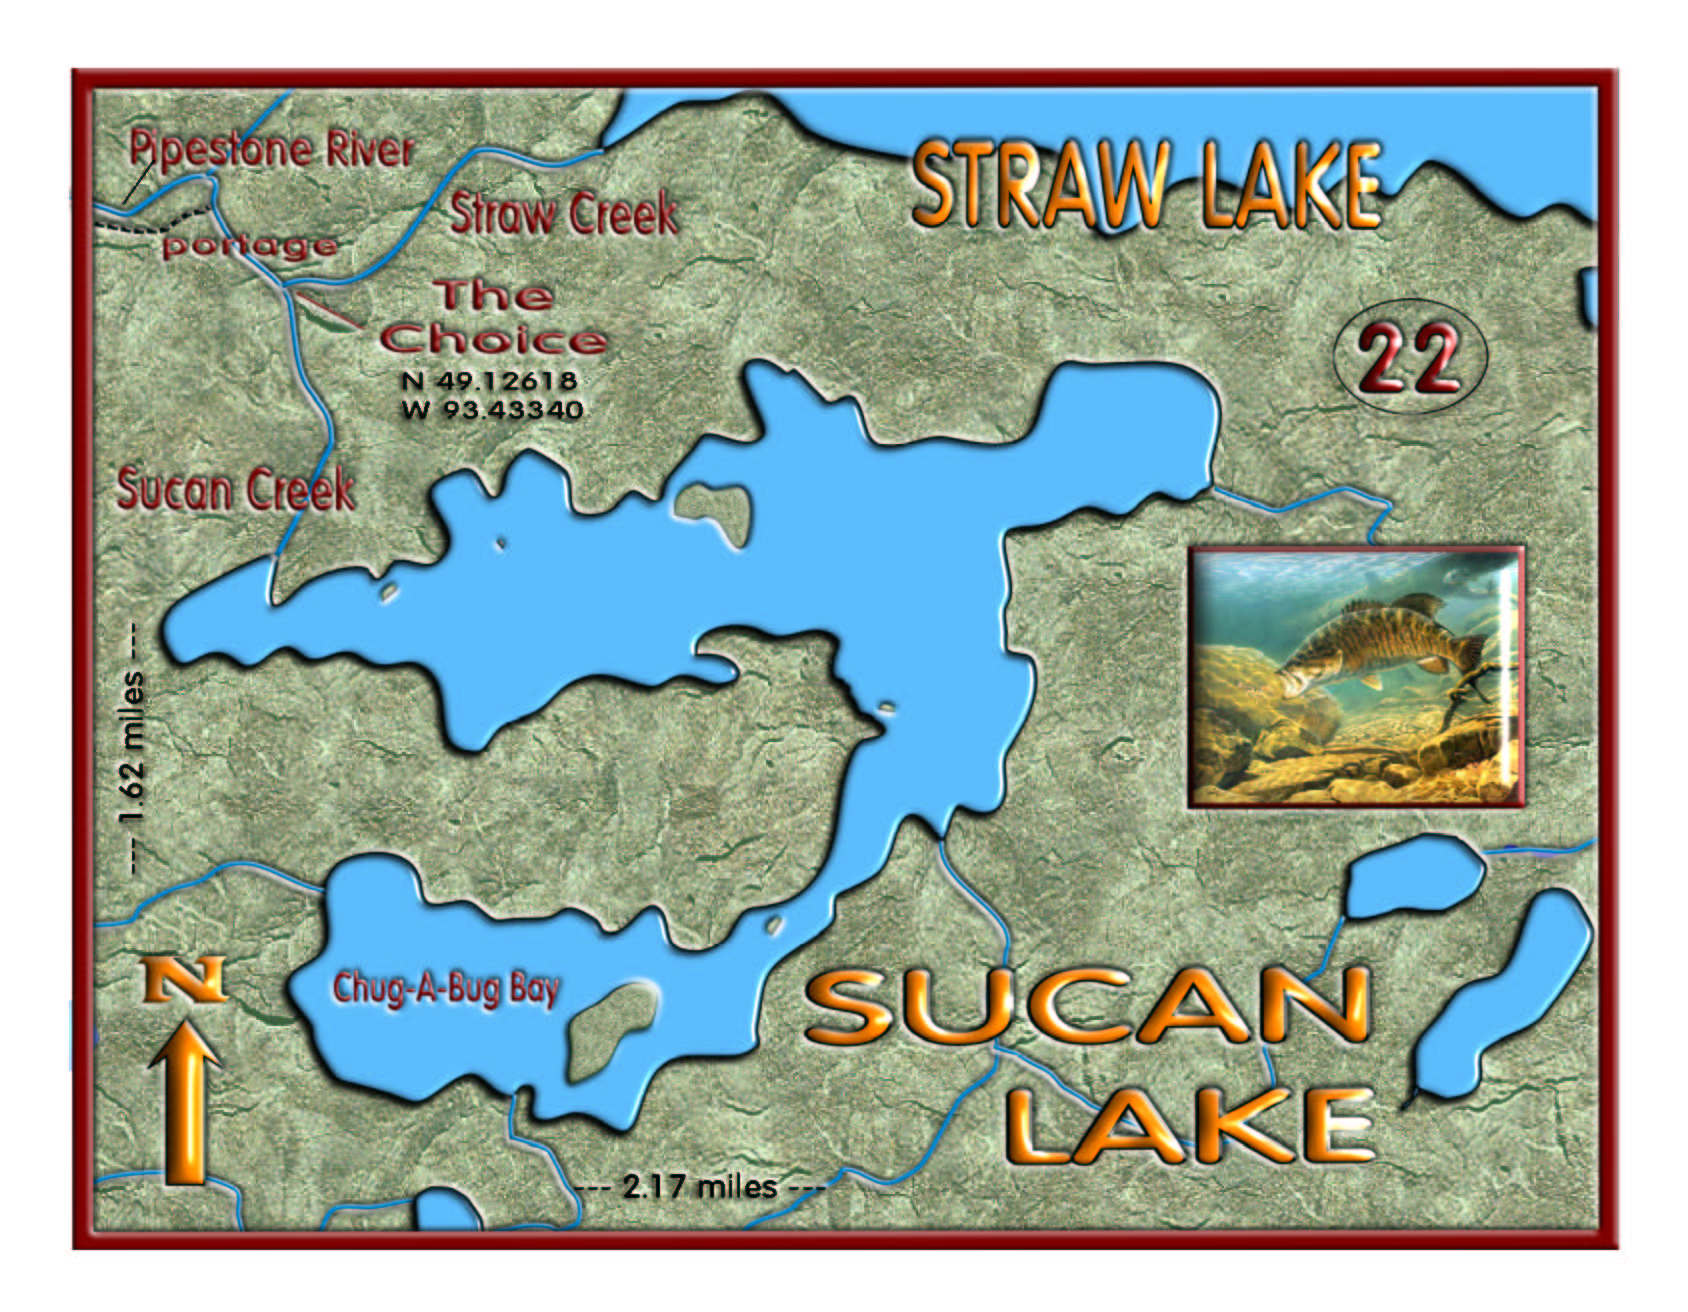 Sucan Lake map